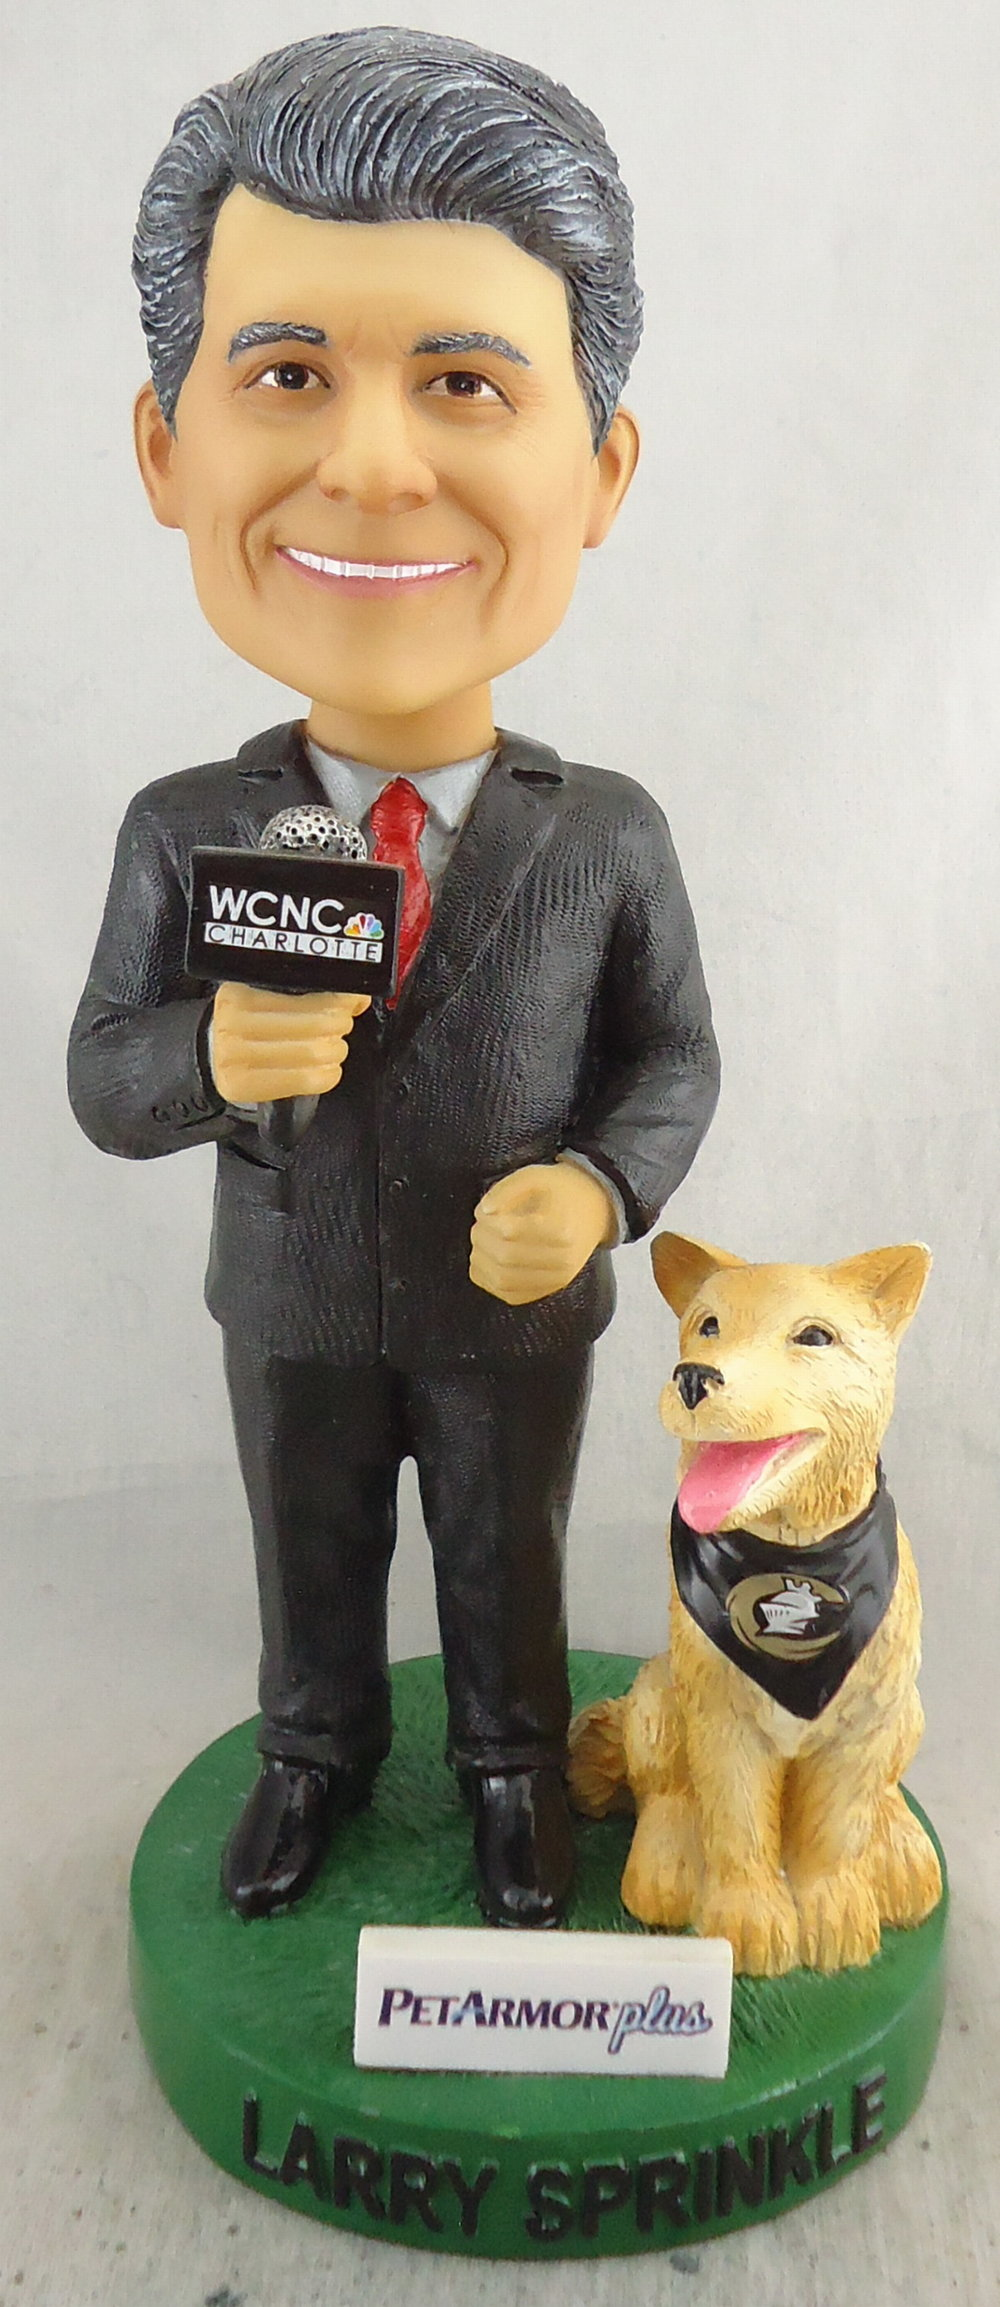 Charlotte Knights - Larry Sprinkle with Dog 112050, 7inch Bobblehead.jpg